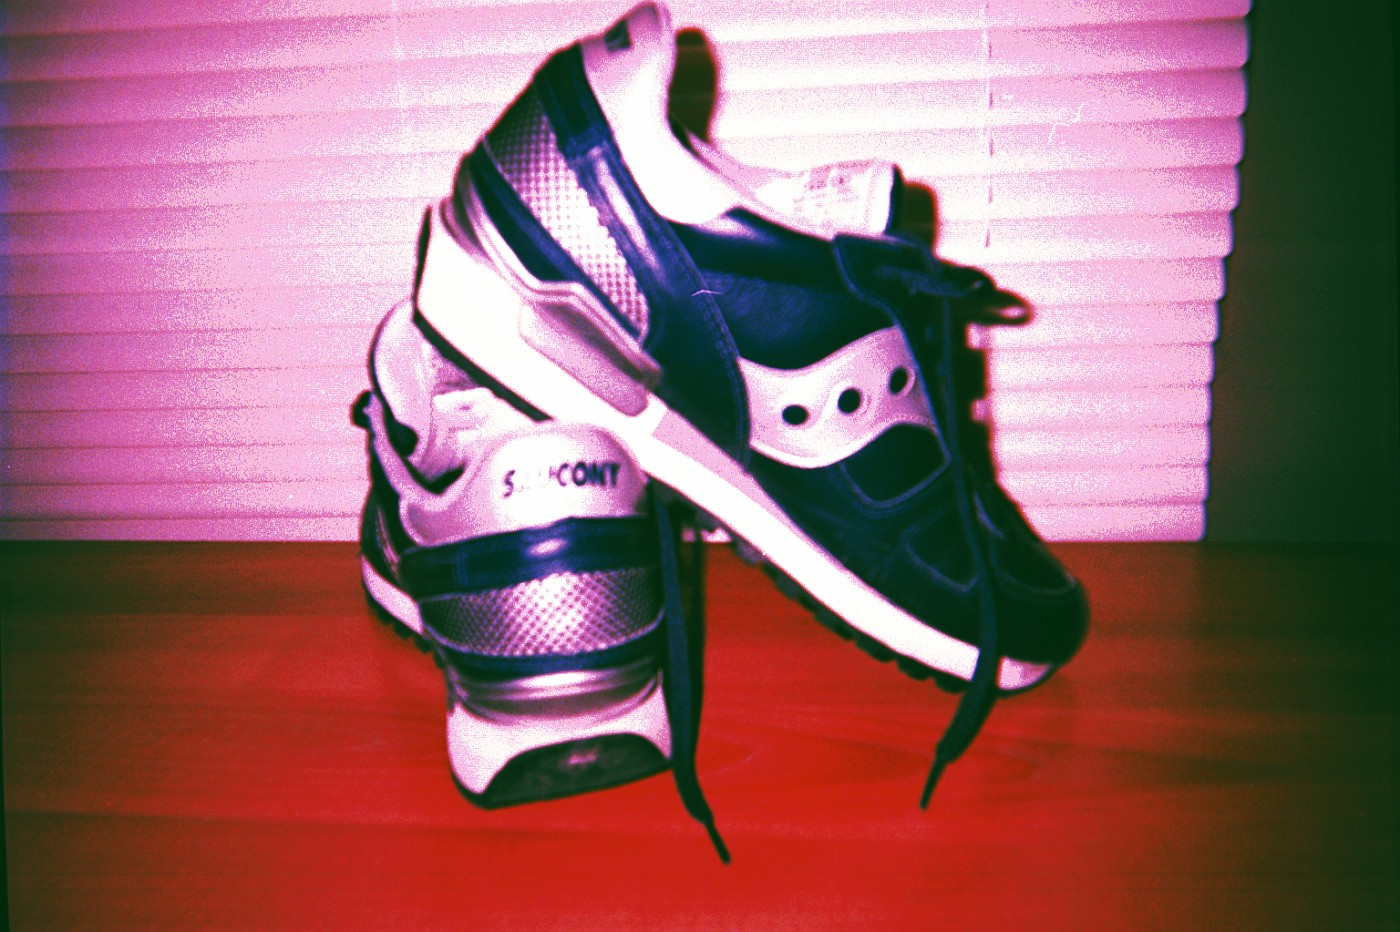 Sawcony Shadow - 1998 re-issue.